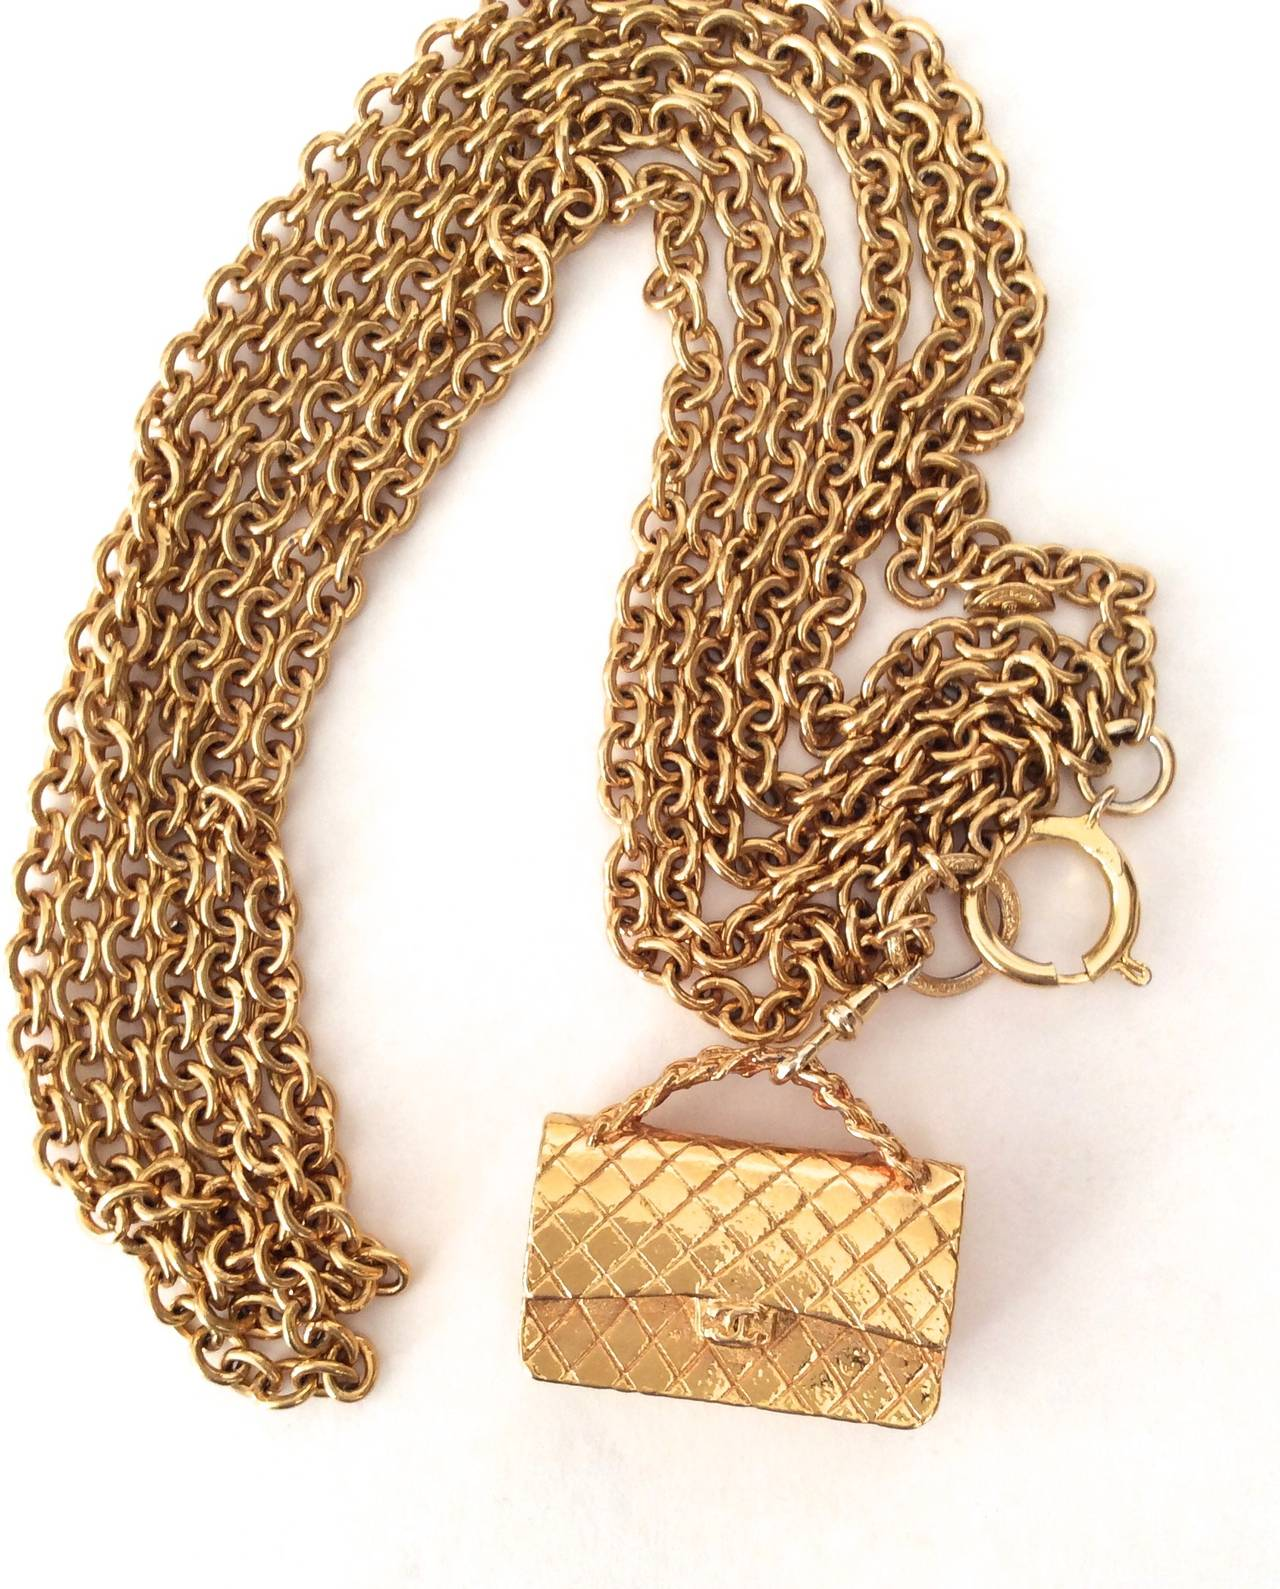 Gold Tone Chanel Triple Chain Necklace with Iconic Purse Pendant 9